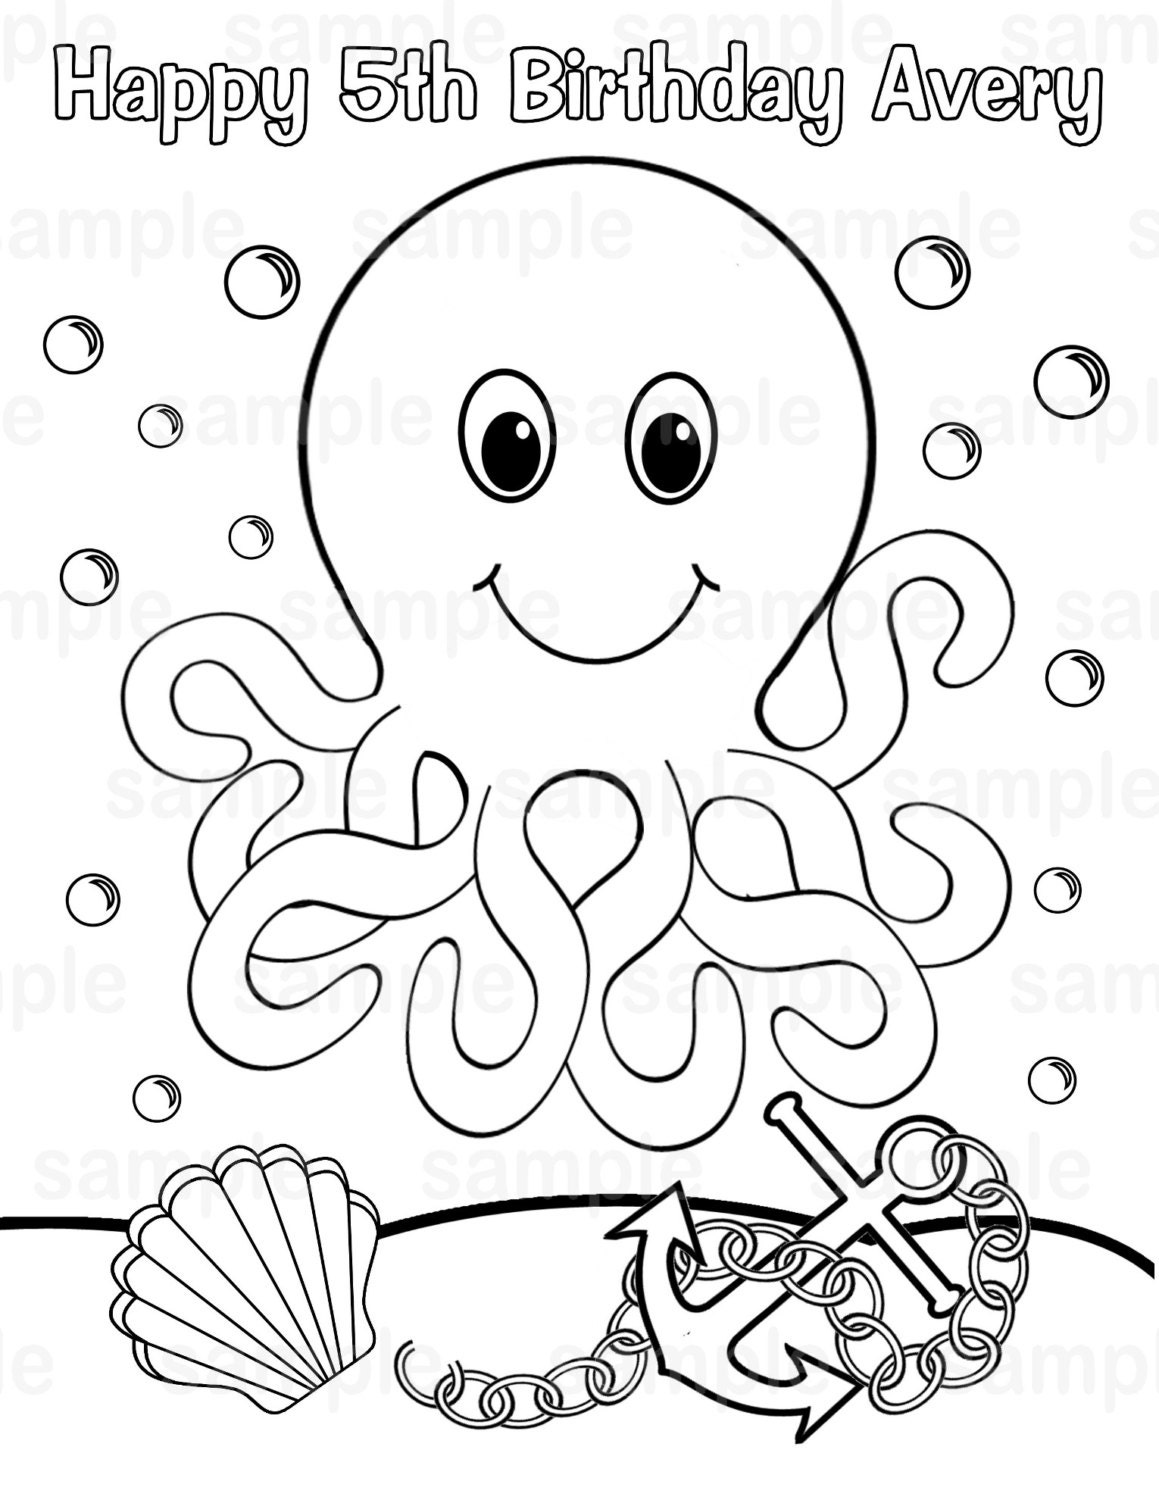 uner the sea coloring pages - photo#34